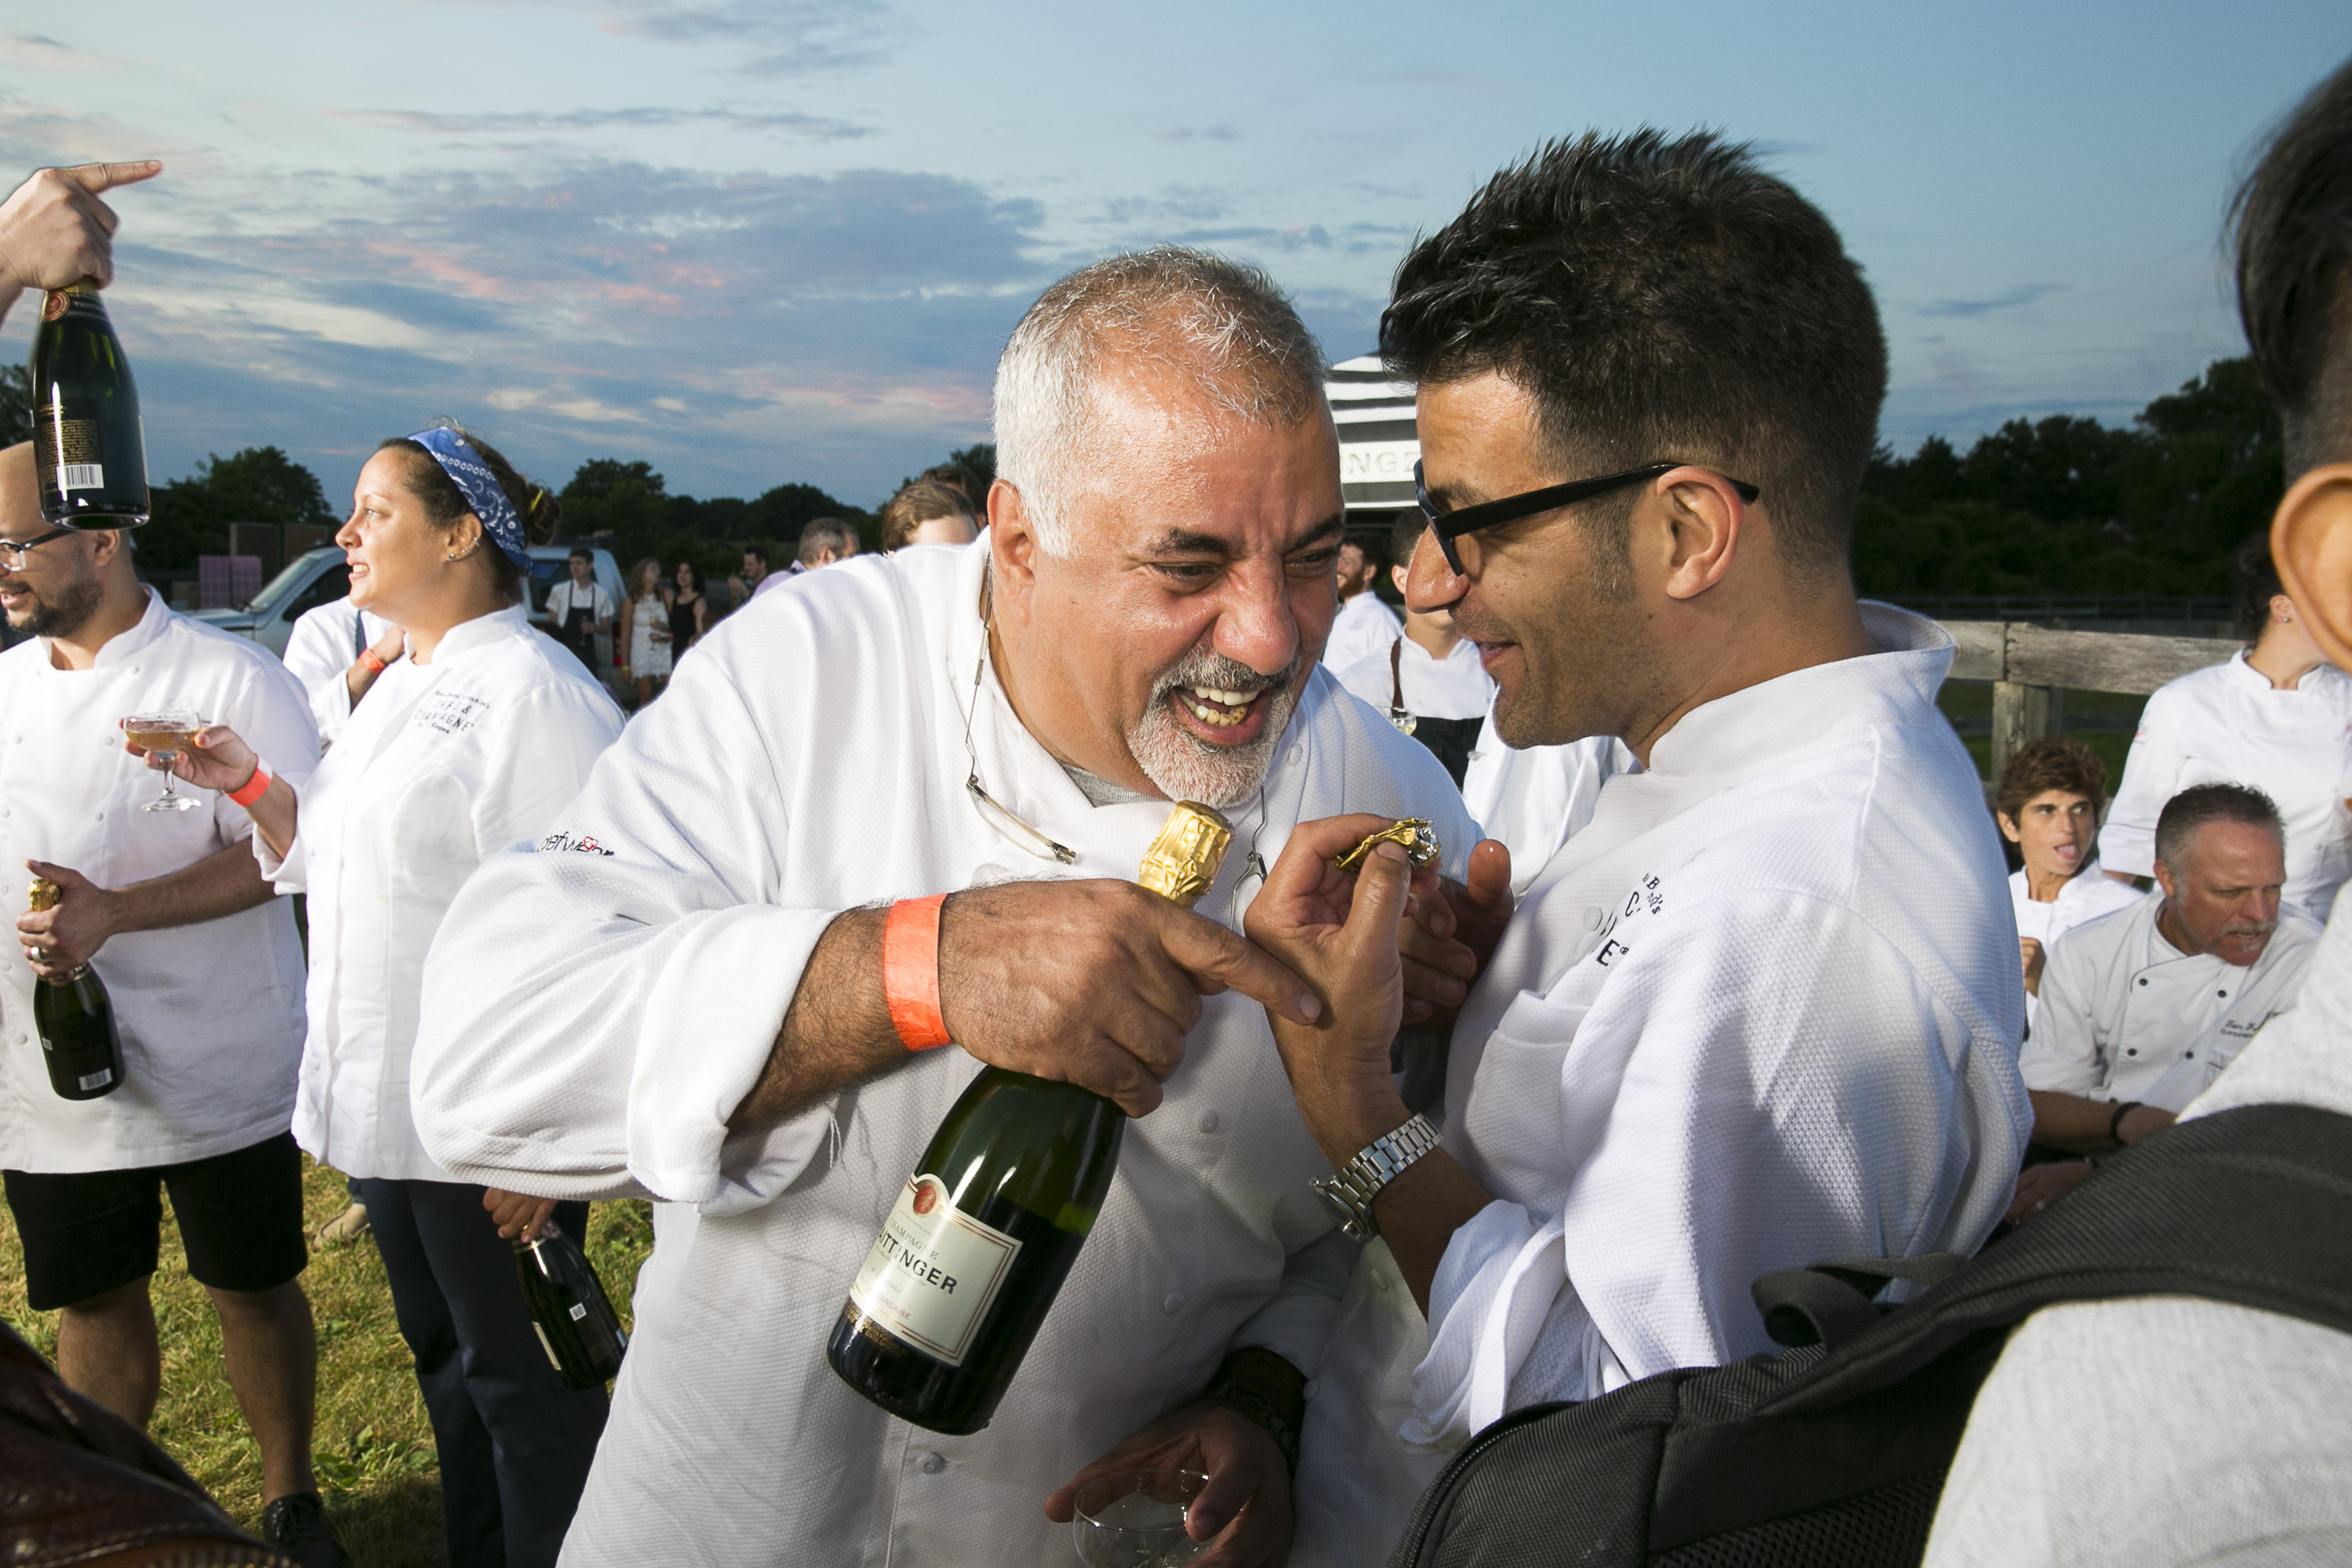 Chef Sam Hazen and Chef George Mendes seen at James Beard Foundation's Chefs & Champagne at Wolffer Estate on Saturday, July 25, 2015 in Sagaponack, N.Y. (credit: mark von holden/invision for james beard foundation/ap Images)